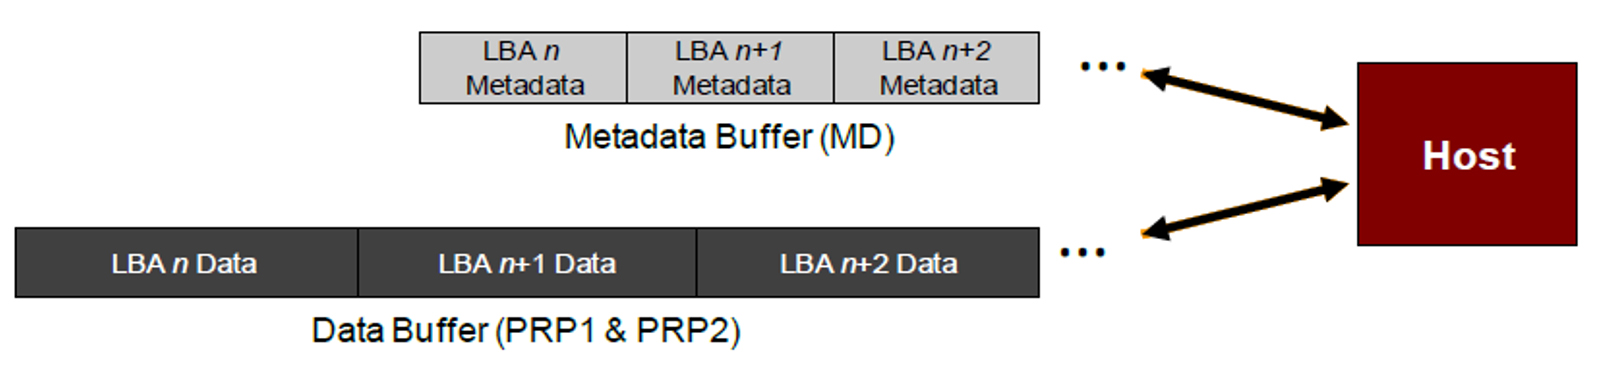 fig-4-metadata-buffer